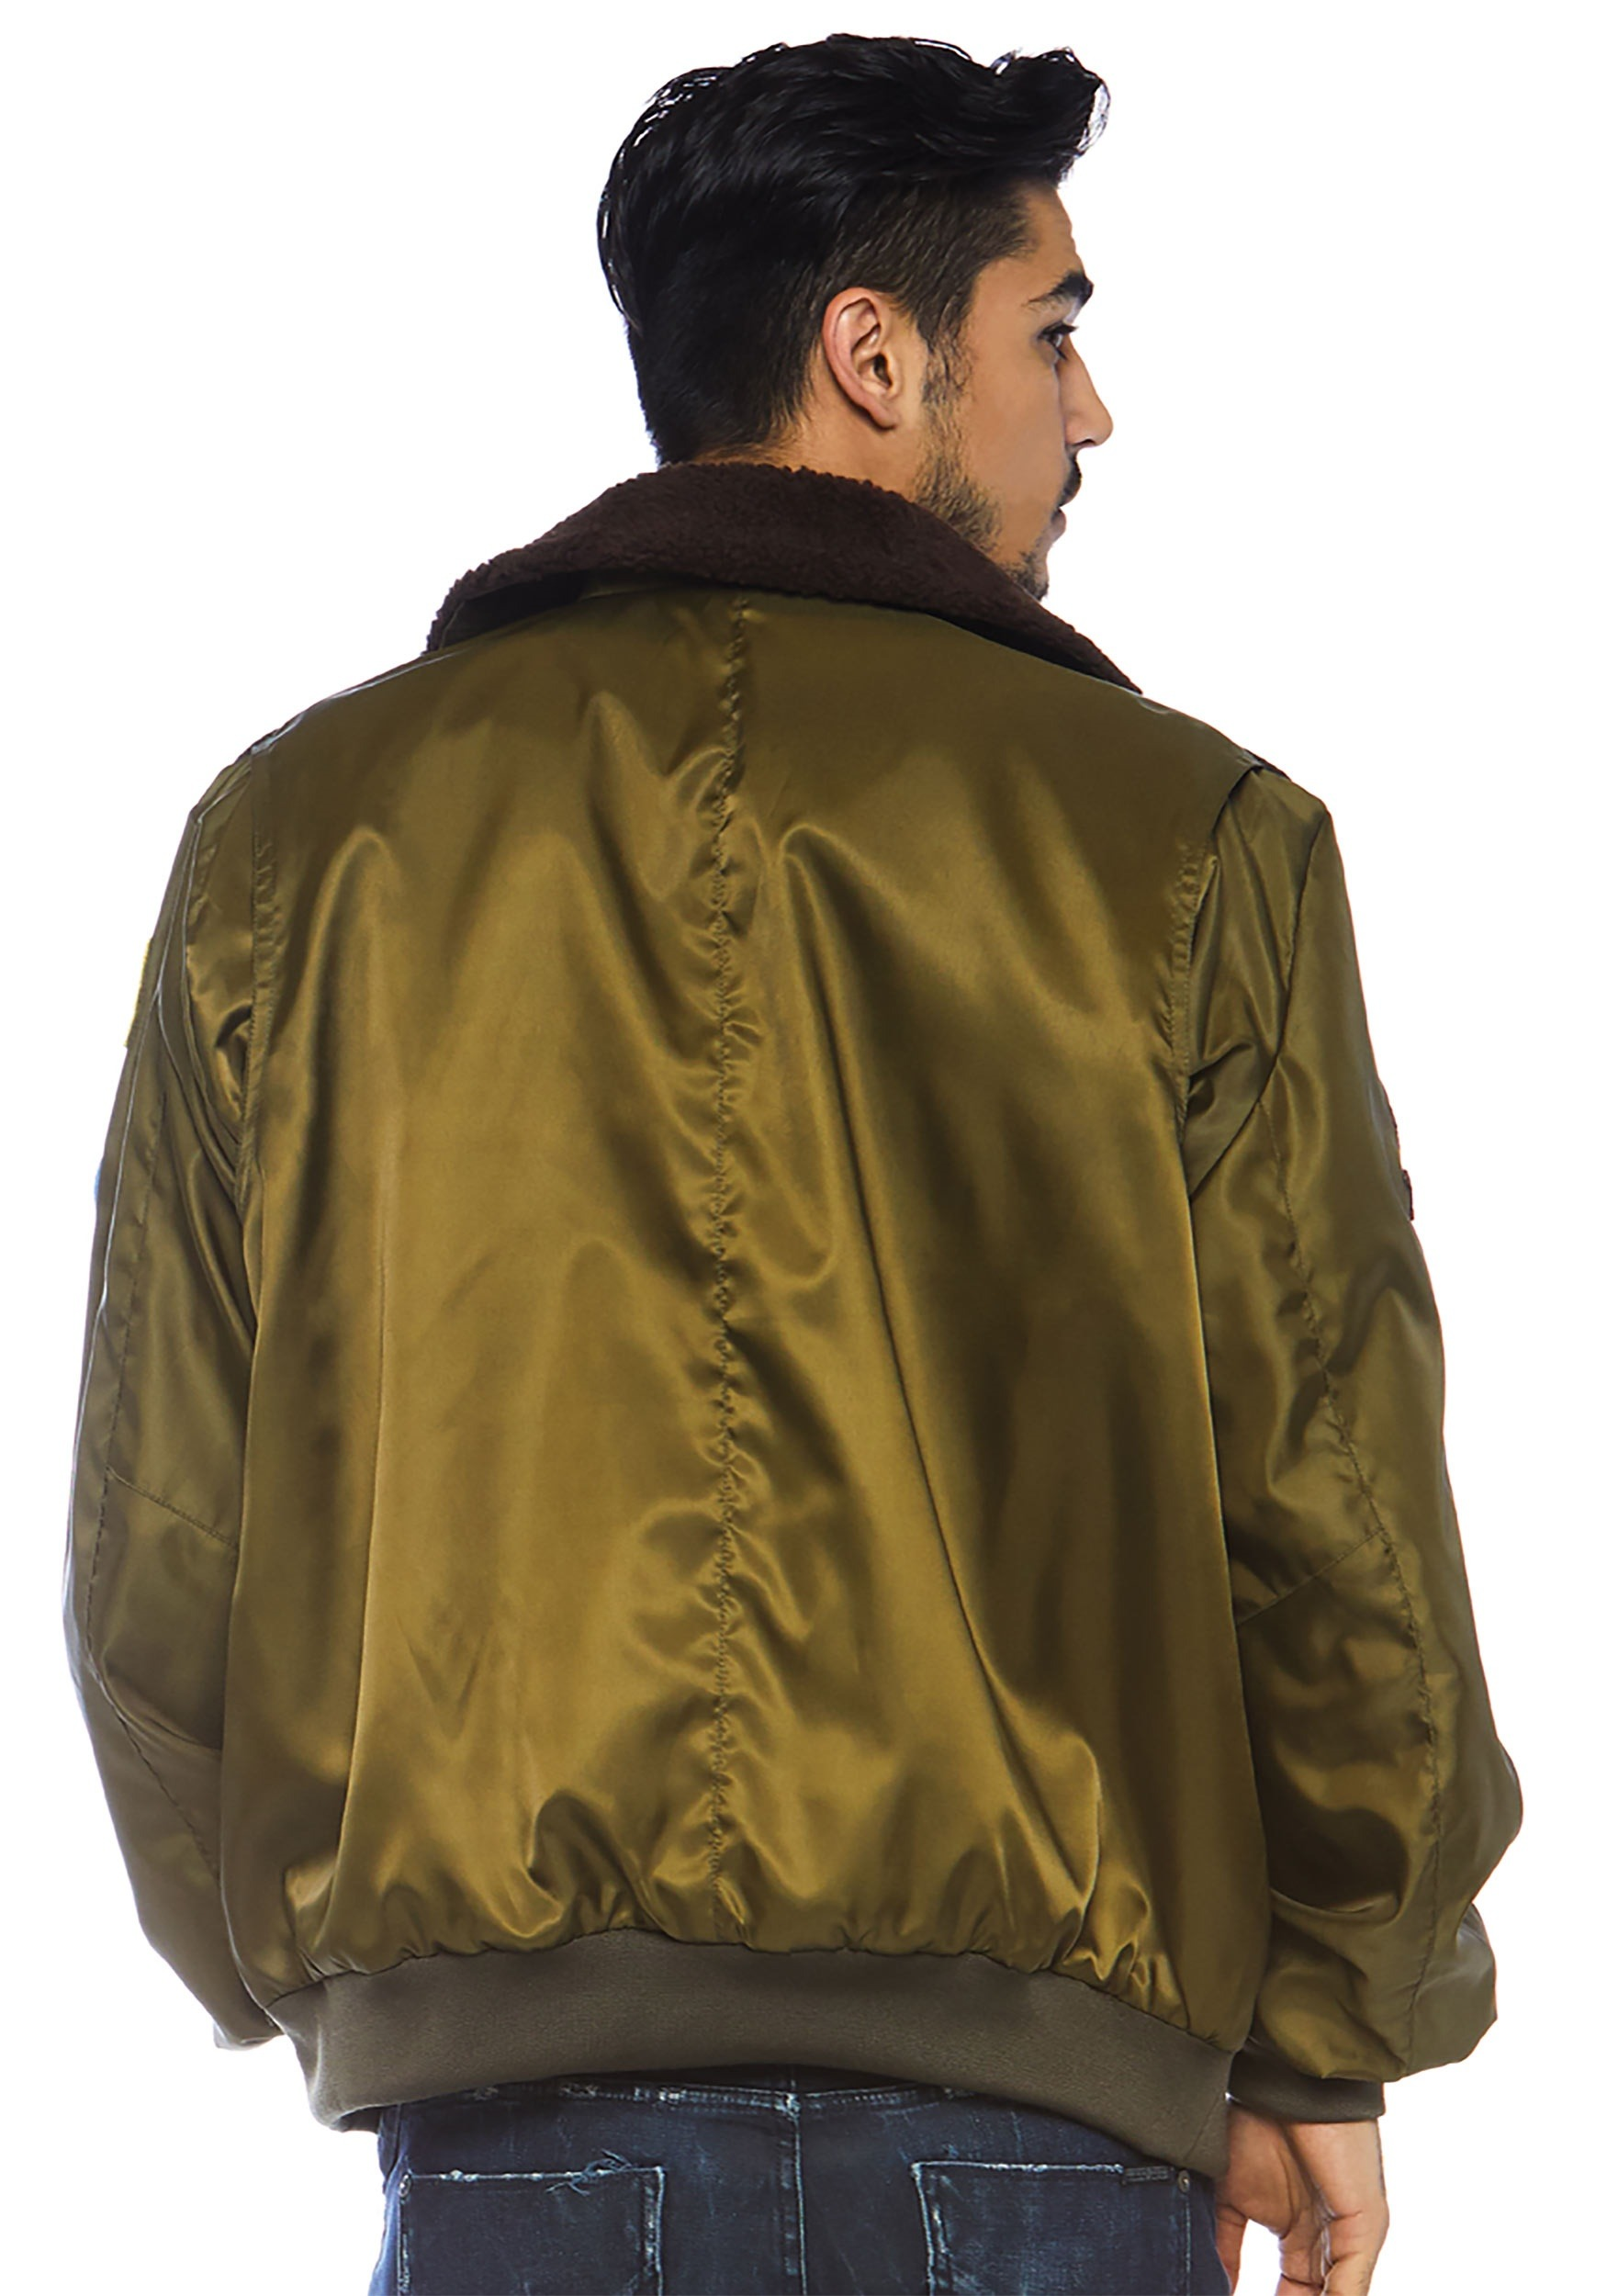 Top Gun Nylon Bomber Jacket Costume for Men